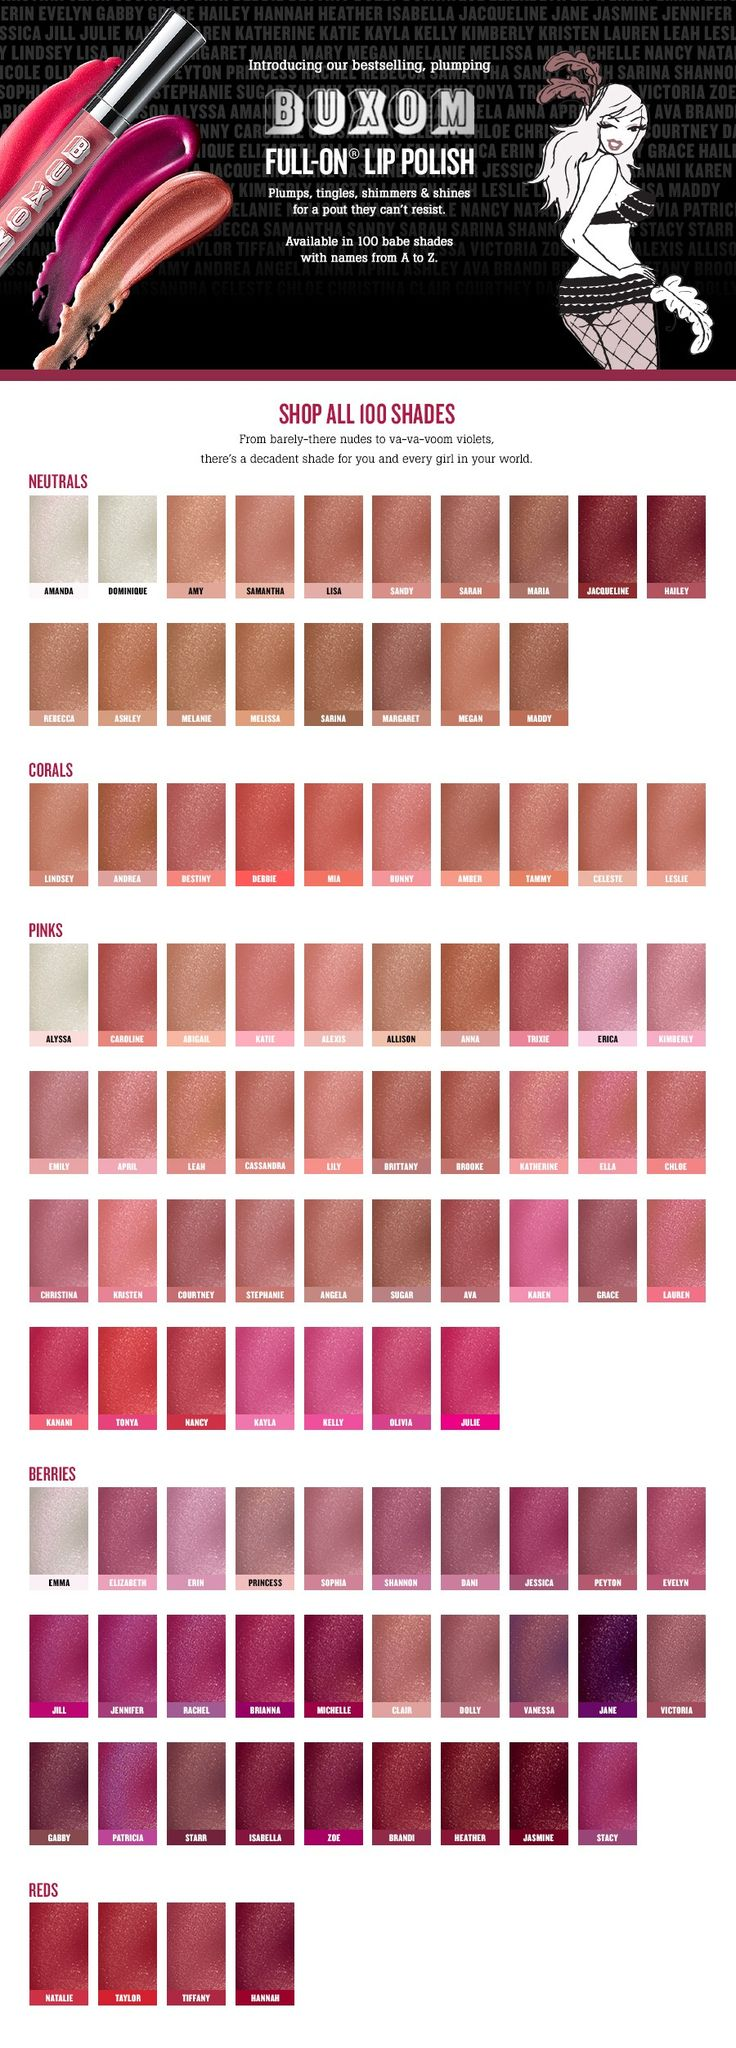 http://images.ulta.com/is/image/Ulta/buxom_lippolish_shades?scl=1